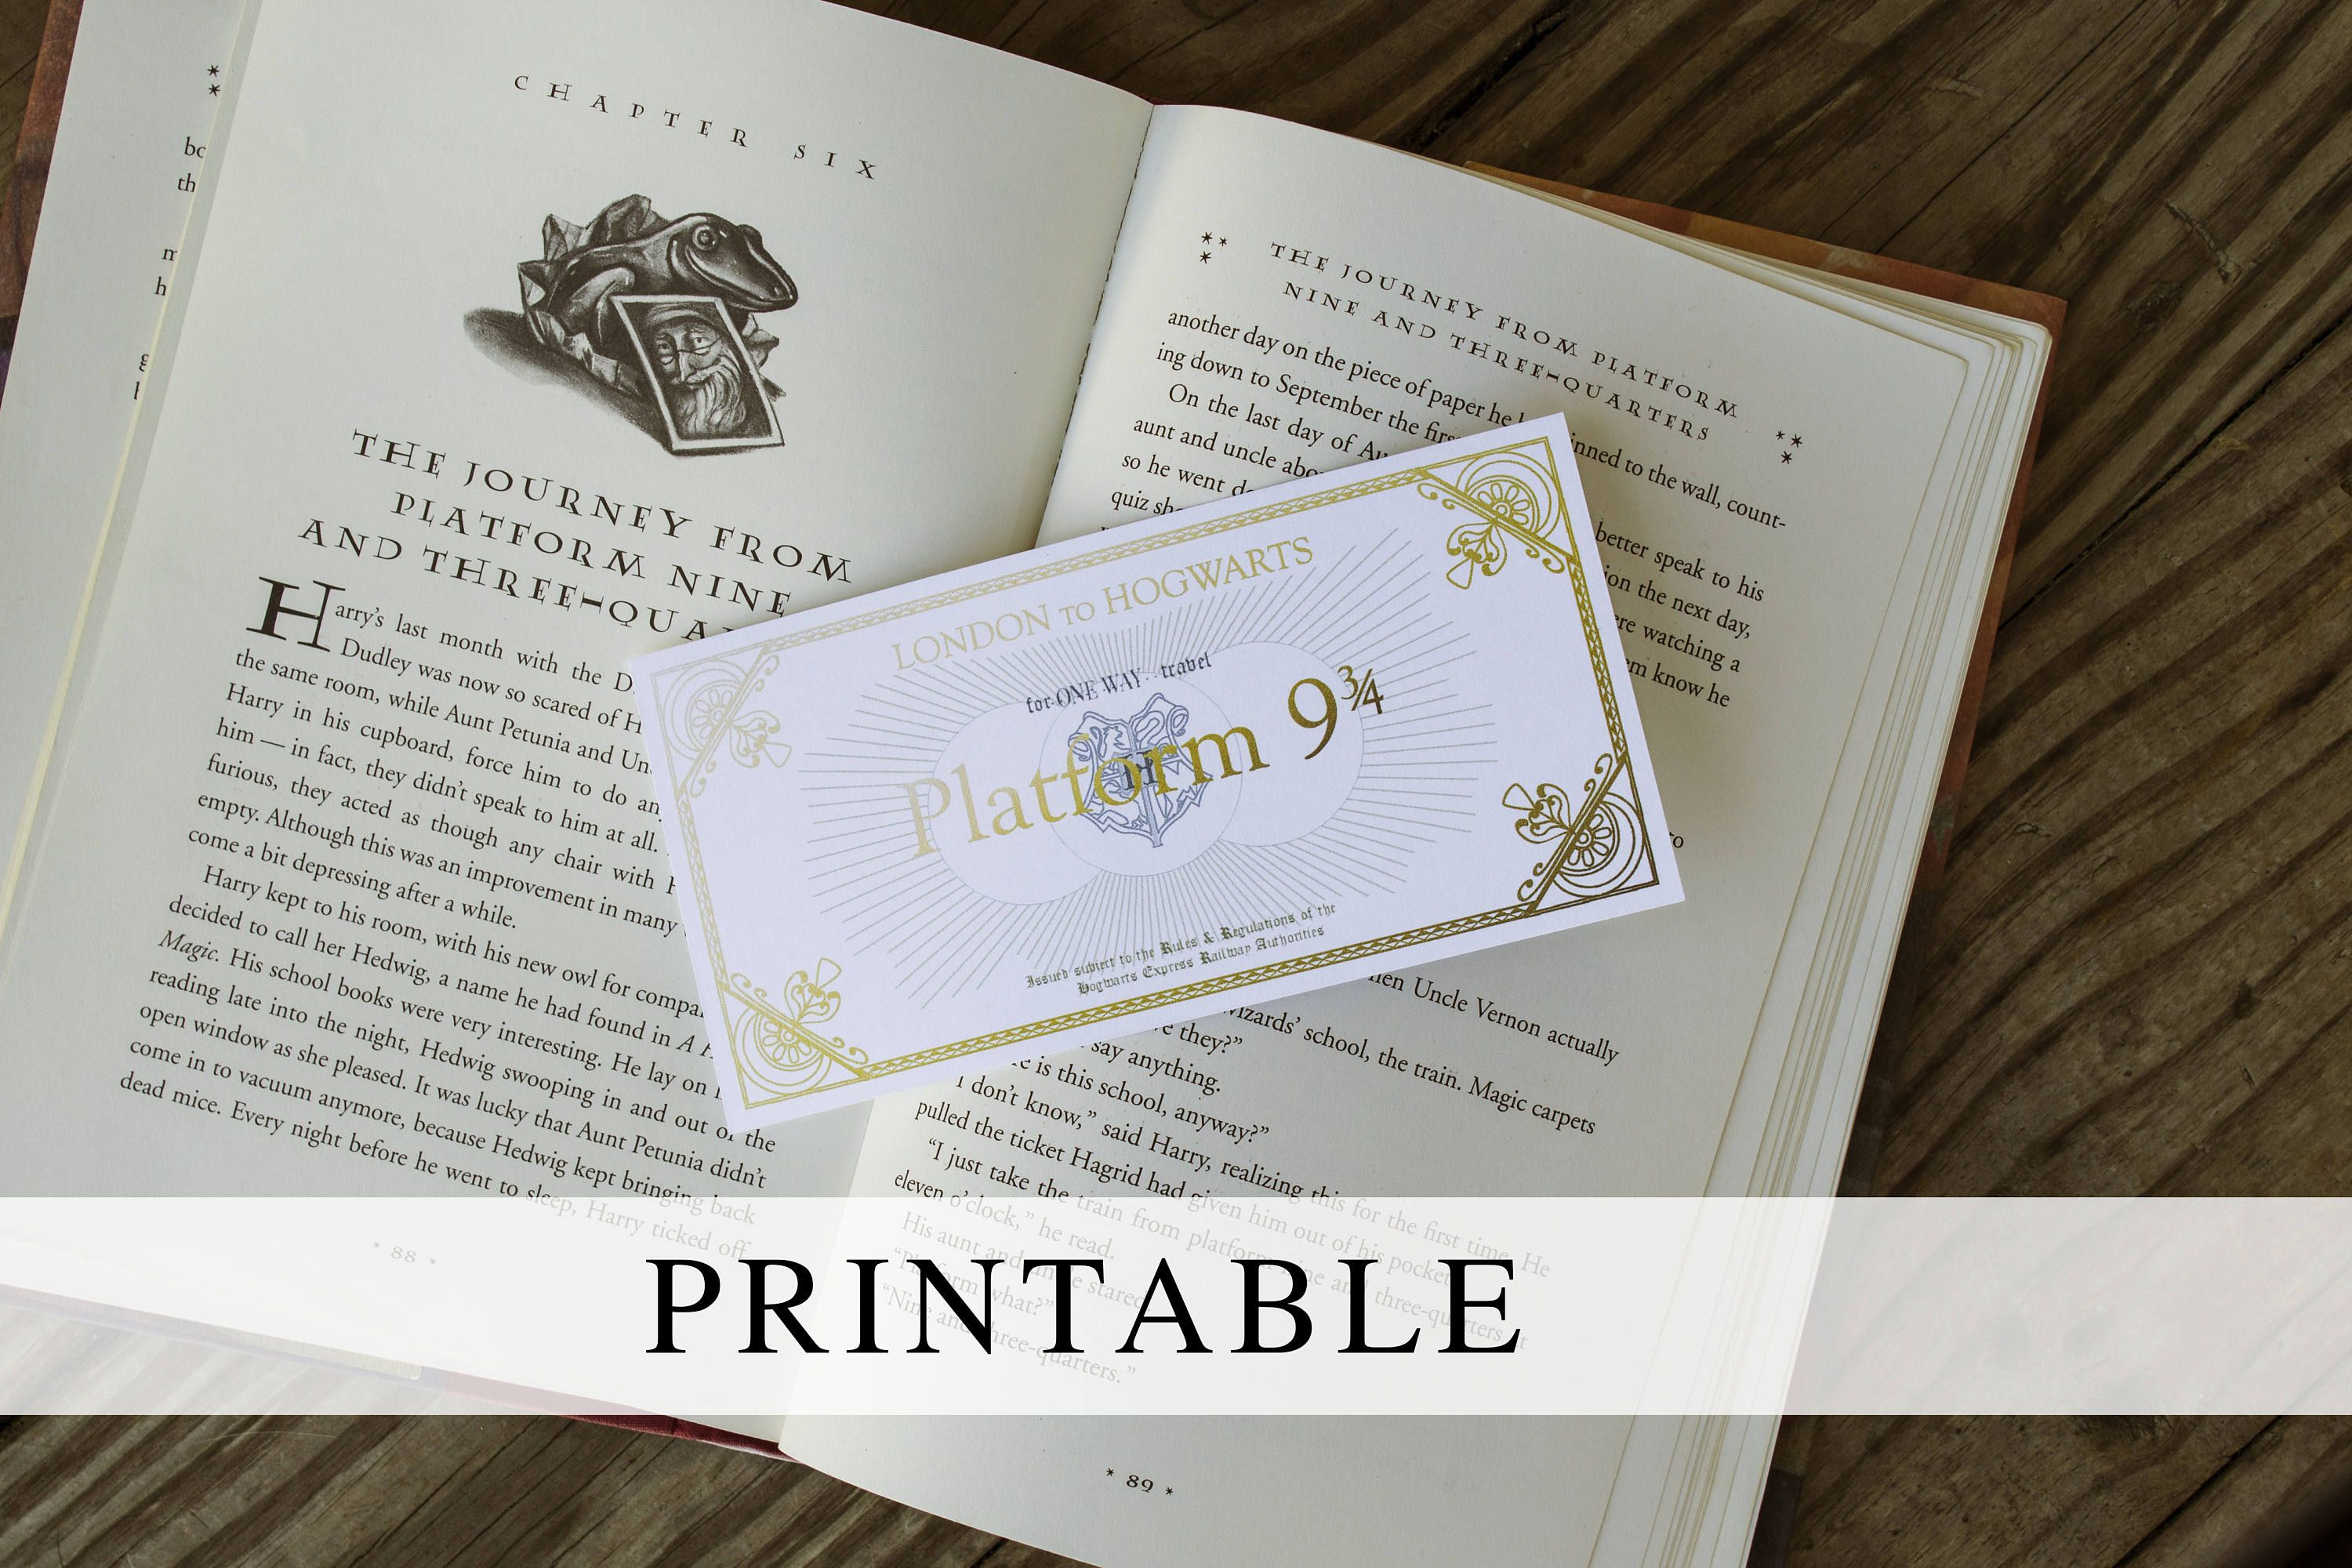 graphic about Hogwarts Express Printable named System 9 3/4 Ticket Printable Bookmark, Printable Hogwarts